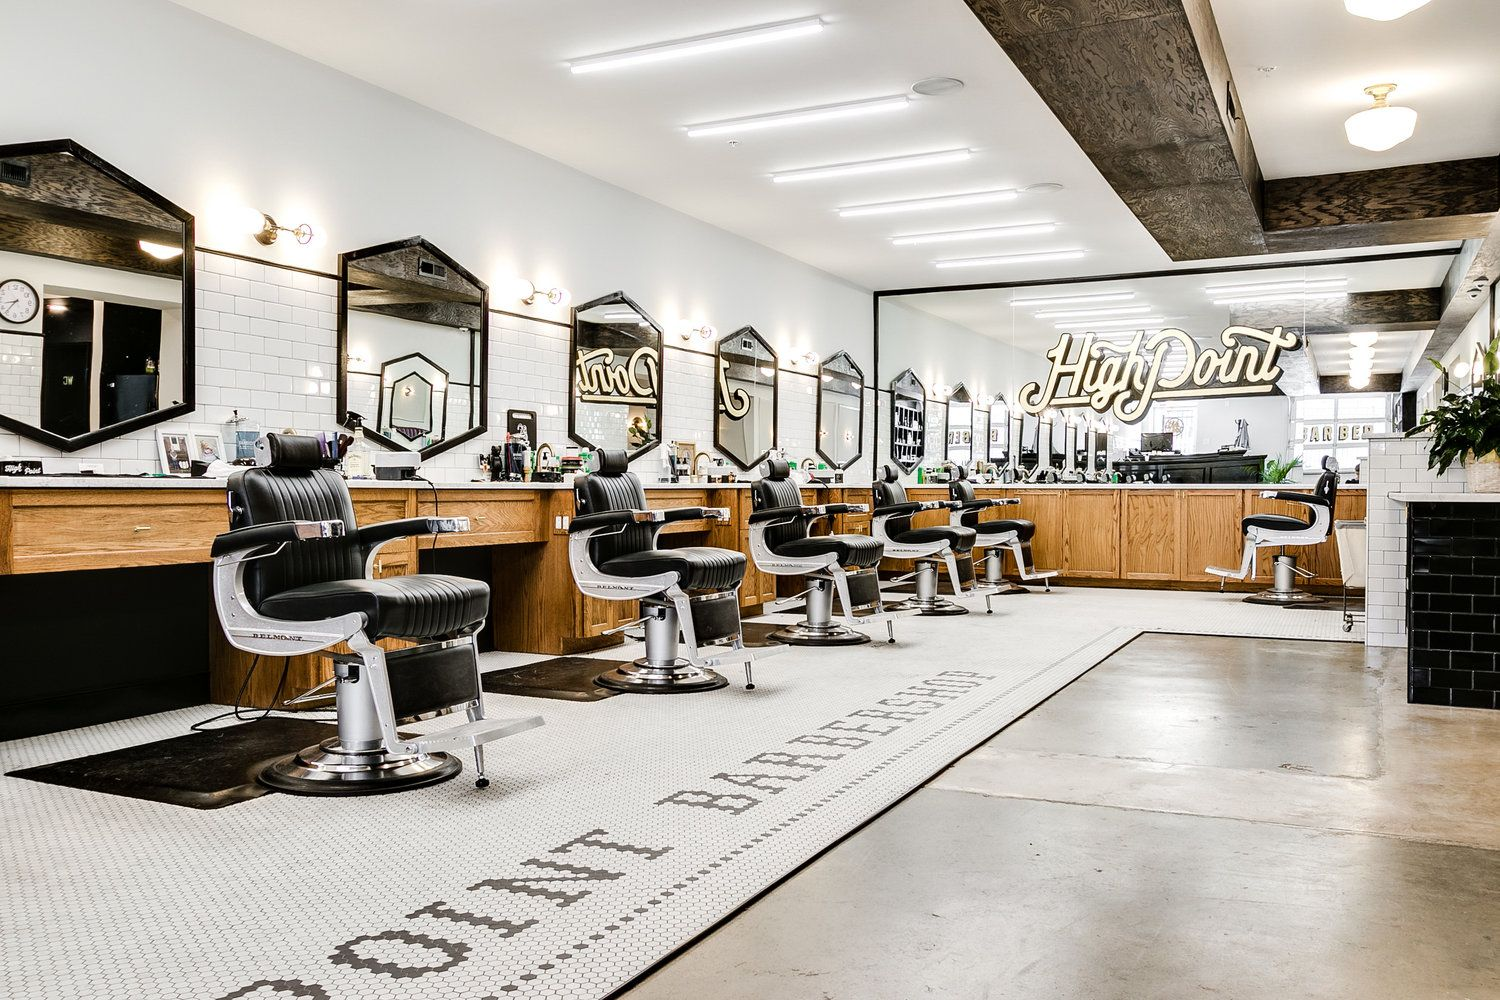 High Point Barbershop - Case Study - Branding, Web Design, Interior Design in Richmond Virginia — Campfire & Co.